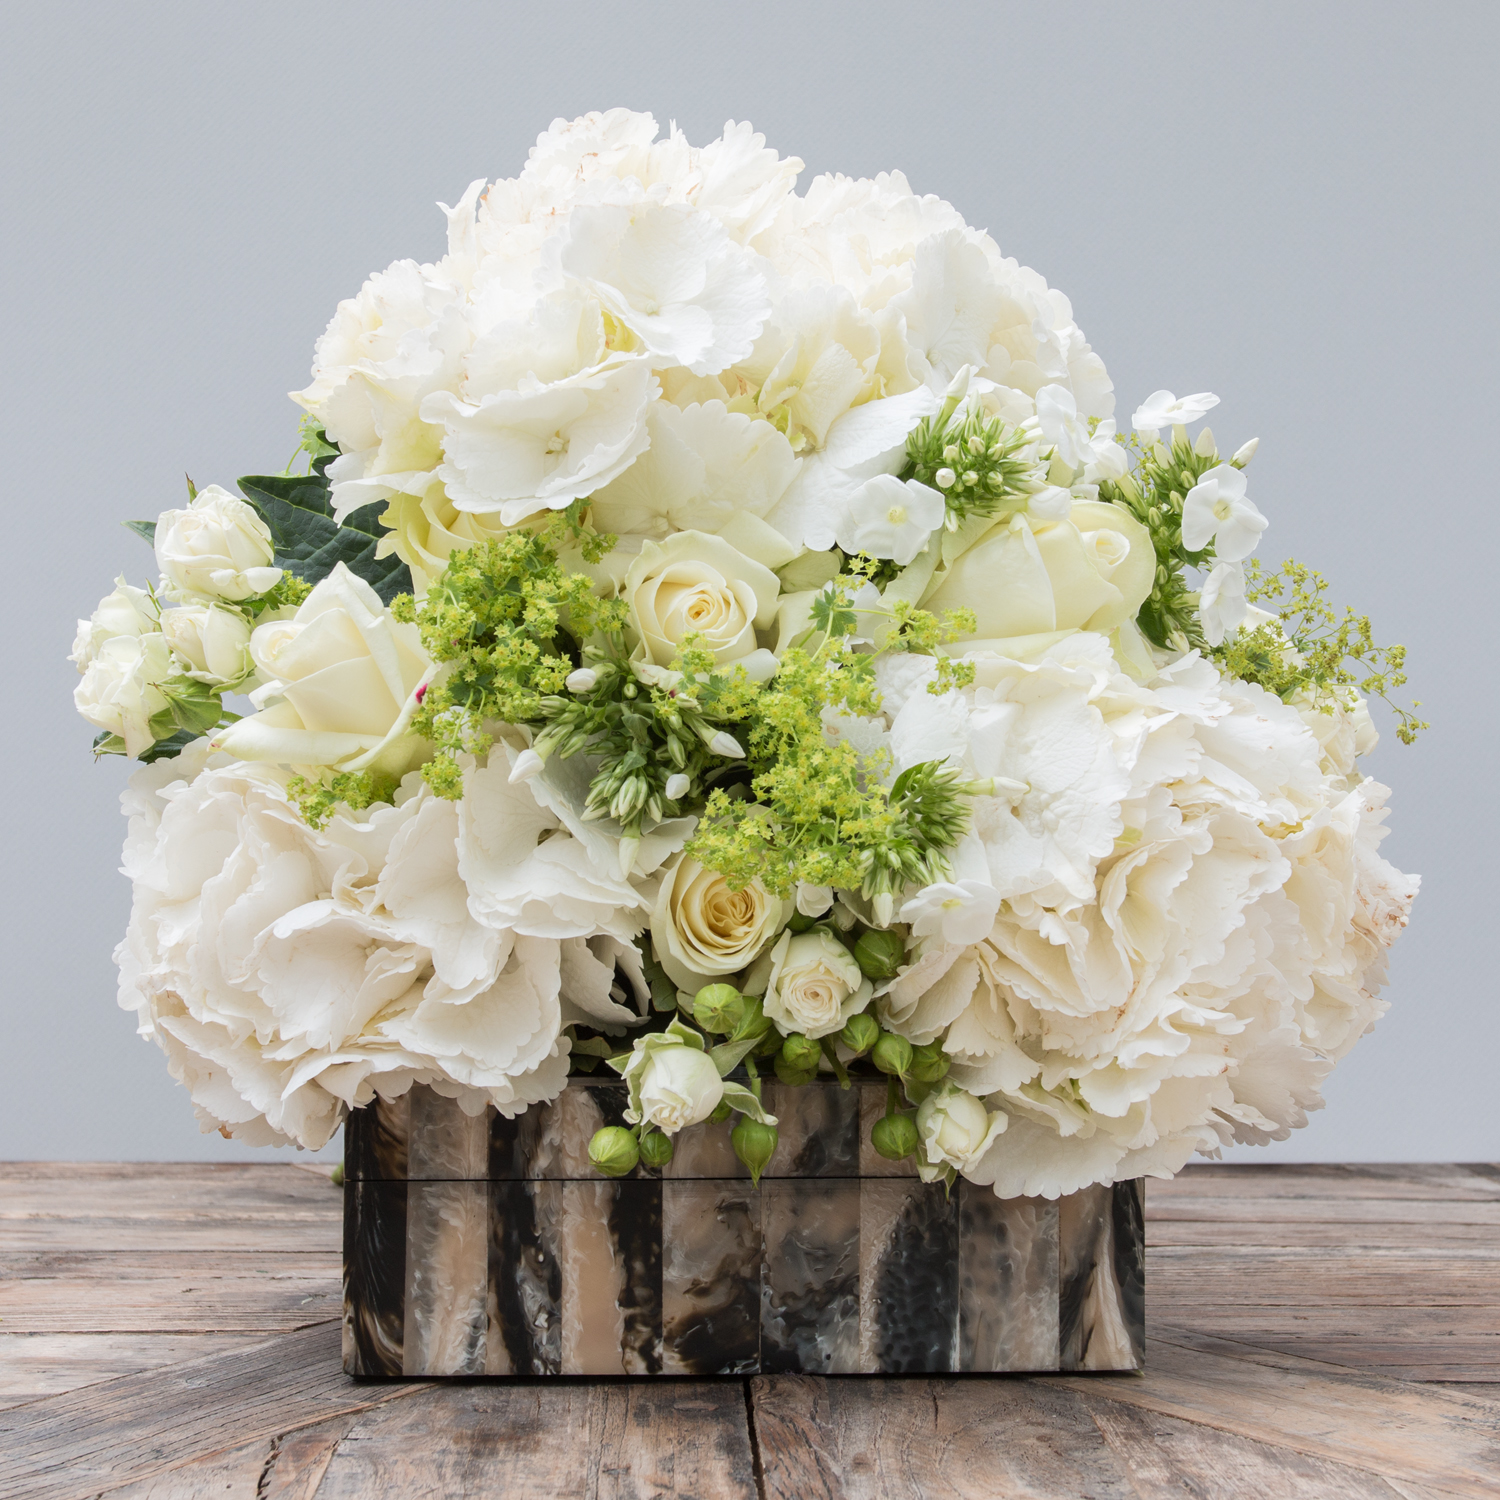 White rose hydrangea bouquet the secret garden white rose hydrangea bouquet izmirmasajfo